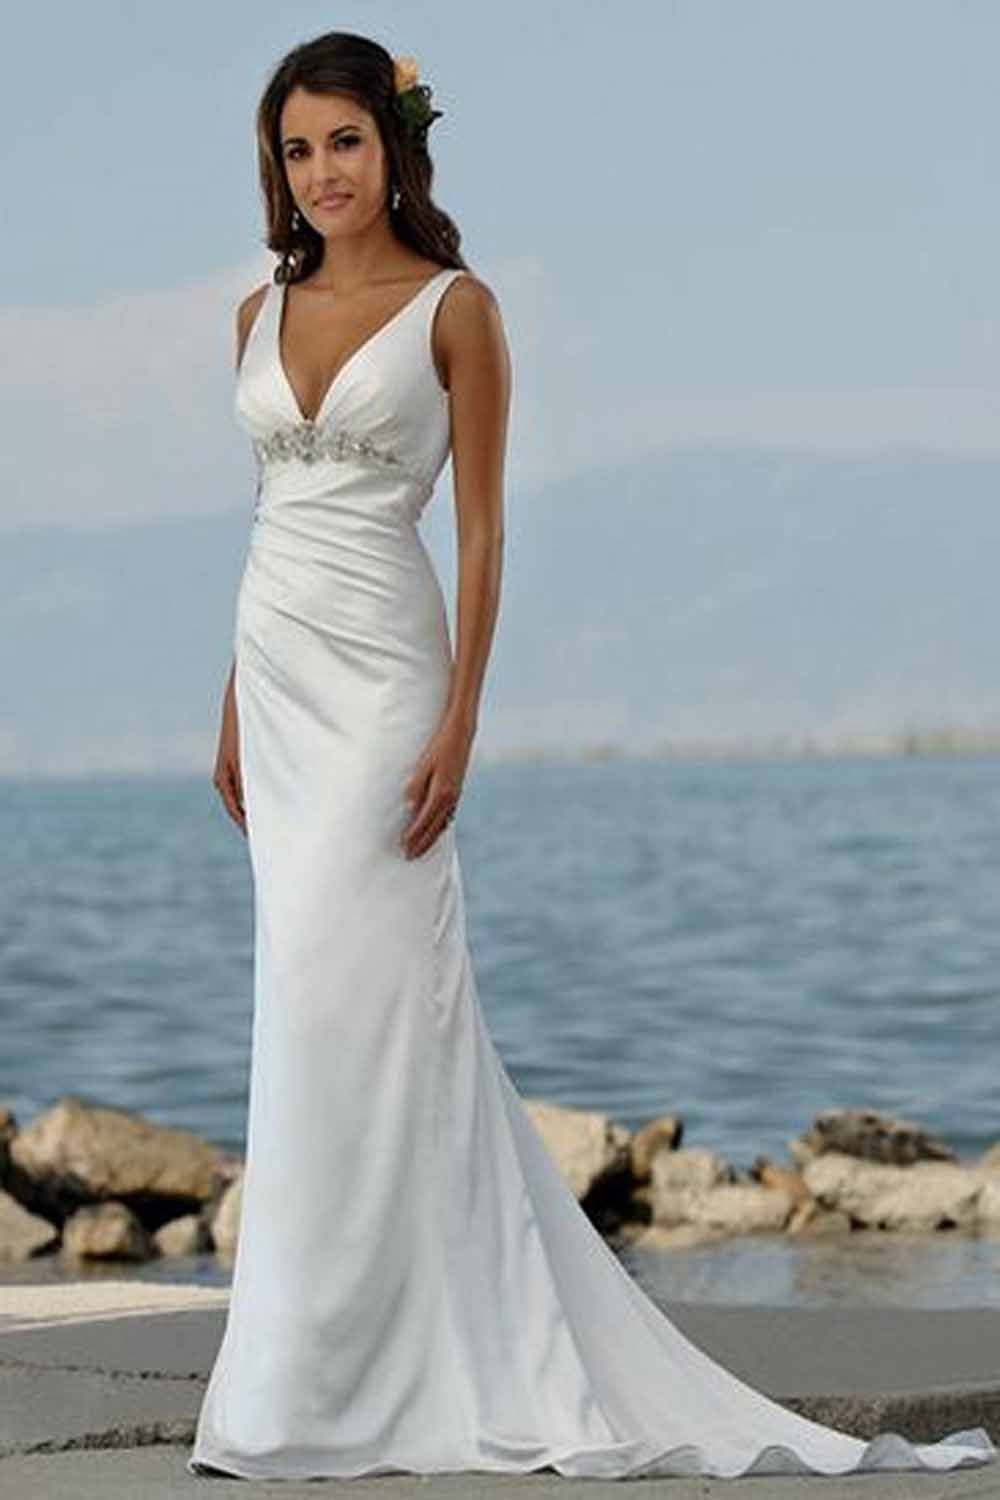 Just Put On Your Beach Wedding Dress Of A Halter Neck